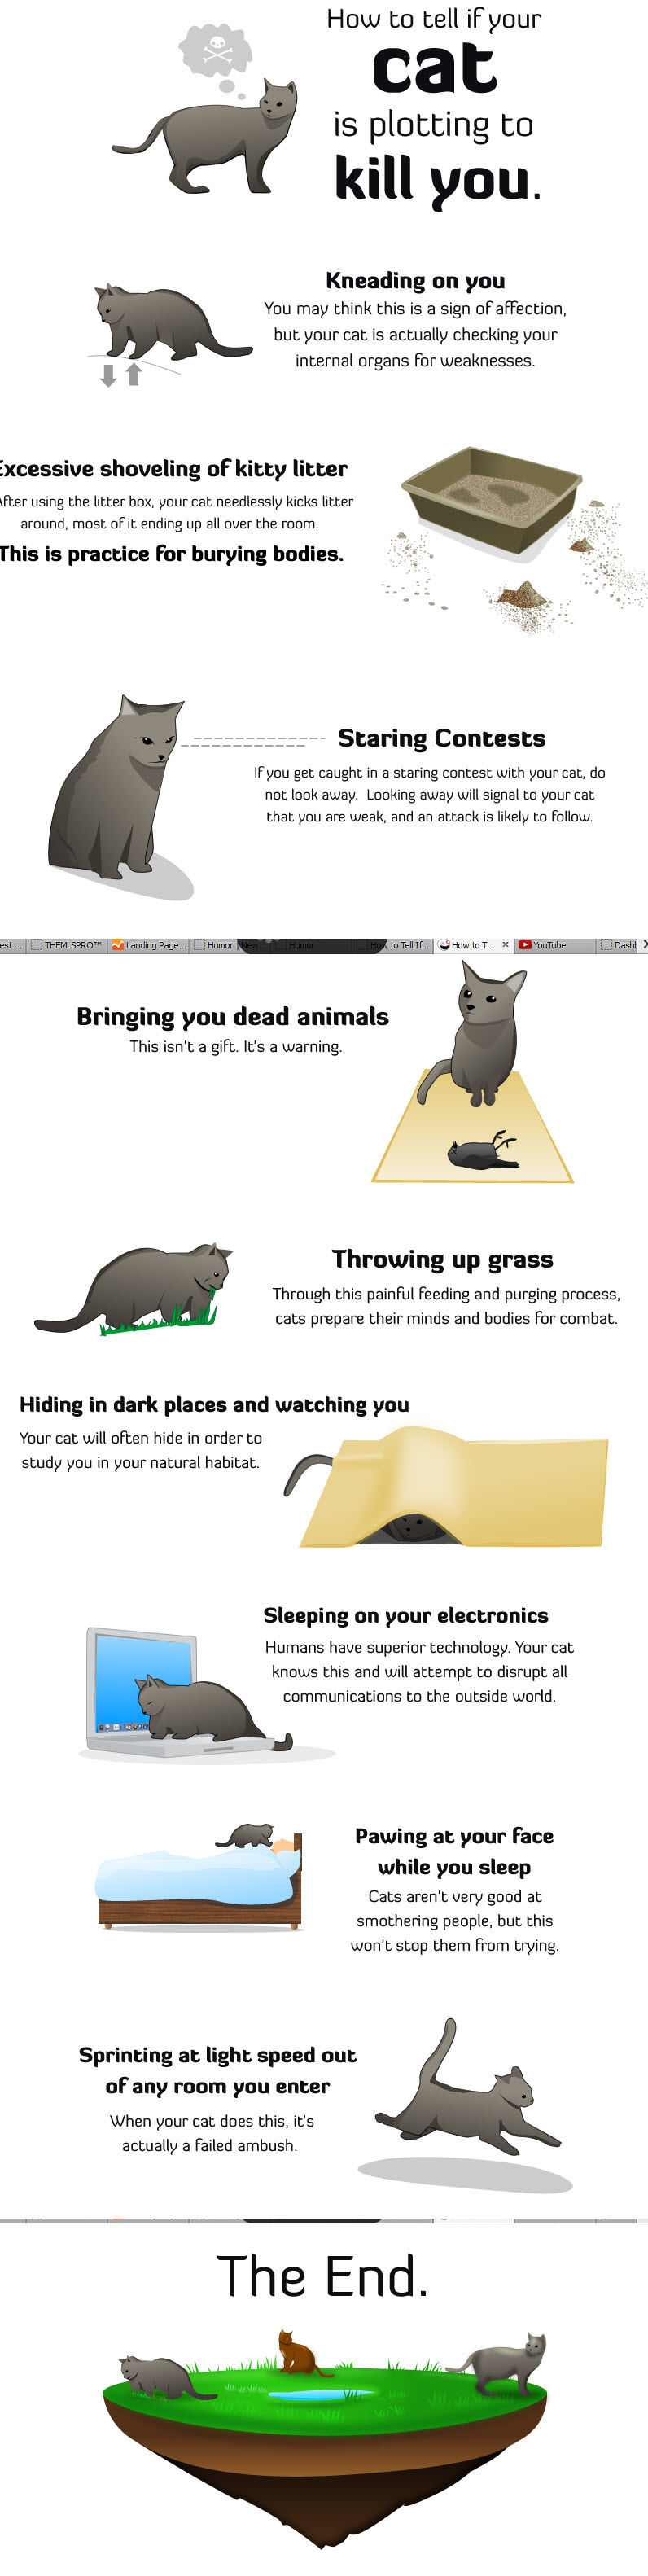 How to tell if your cat is plotting to kill you, comic